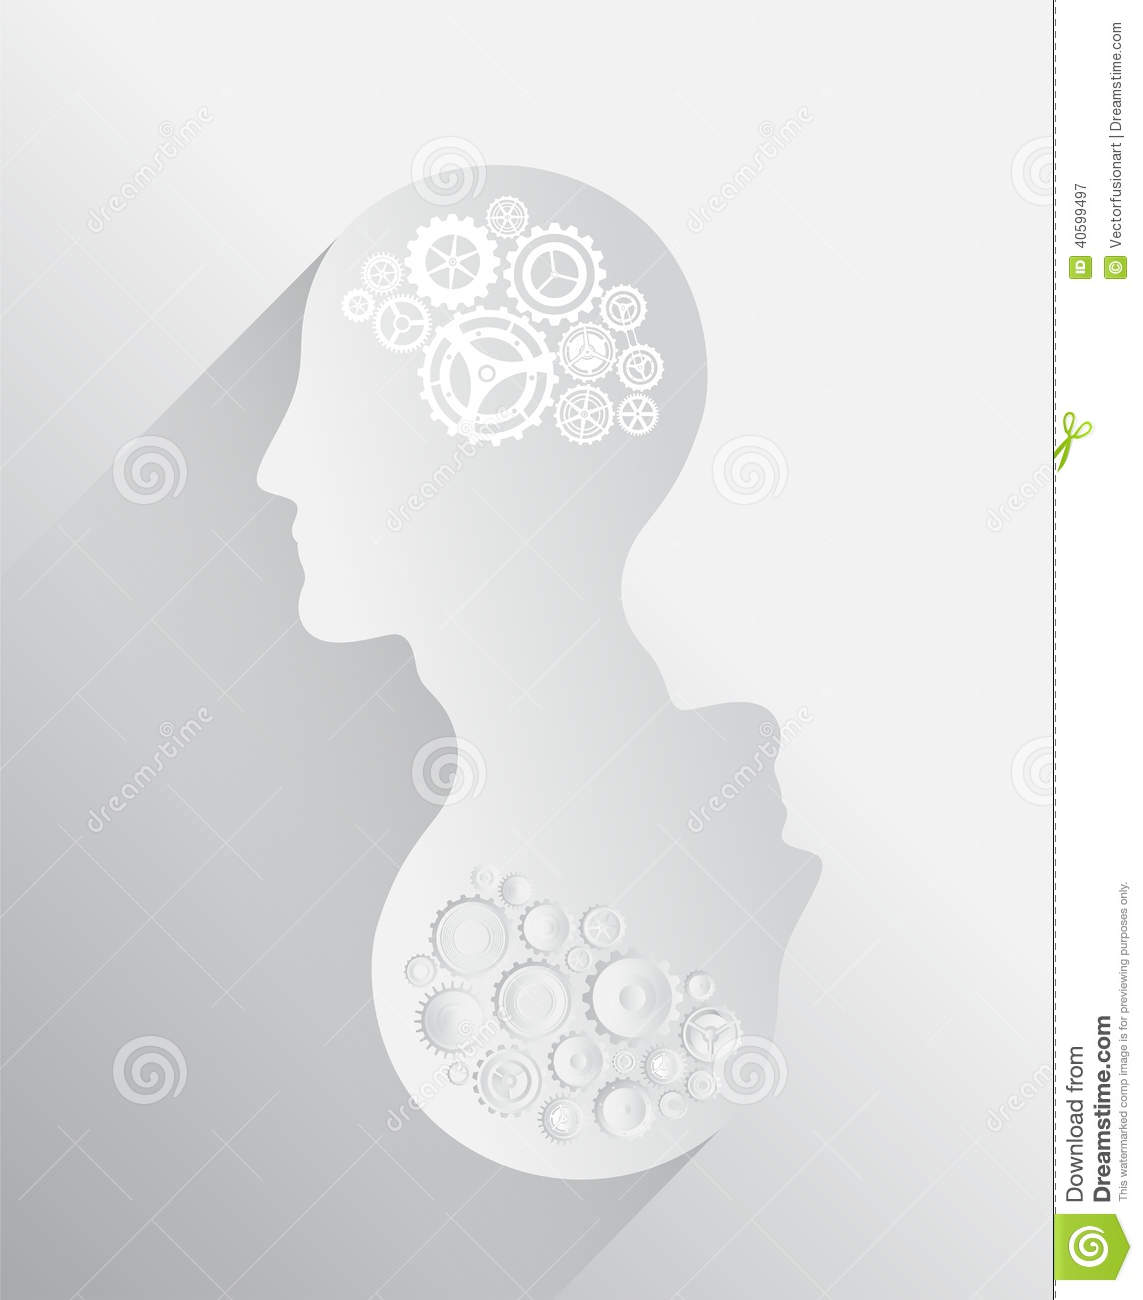 Heads with cogs and wheels for brains